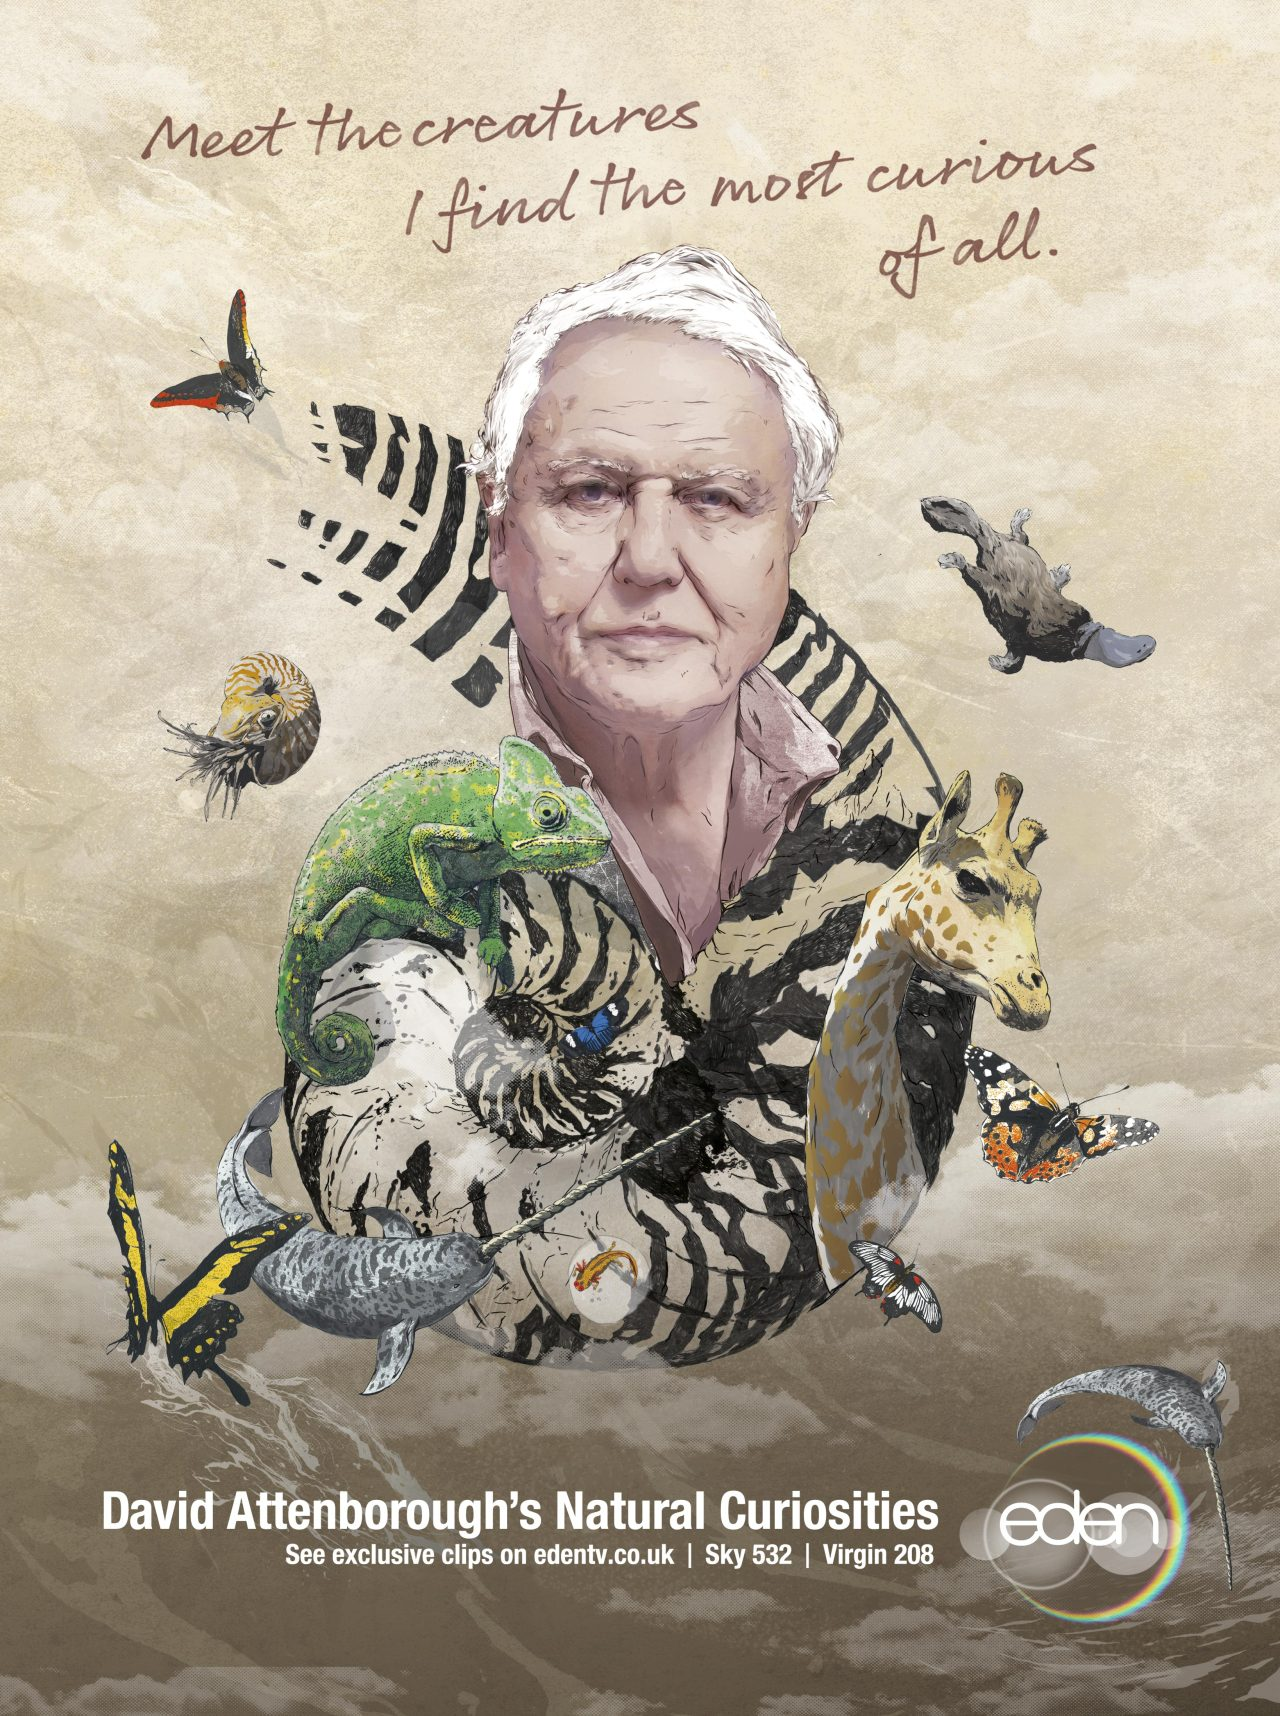 It's back! David Attenborough's Natural Curiosities is repeated today only on Eden!For more information on when each episode is on, head to our website.